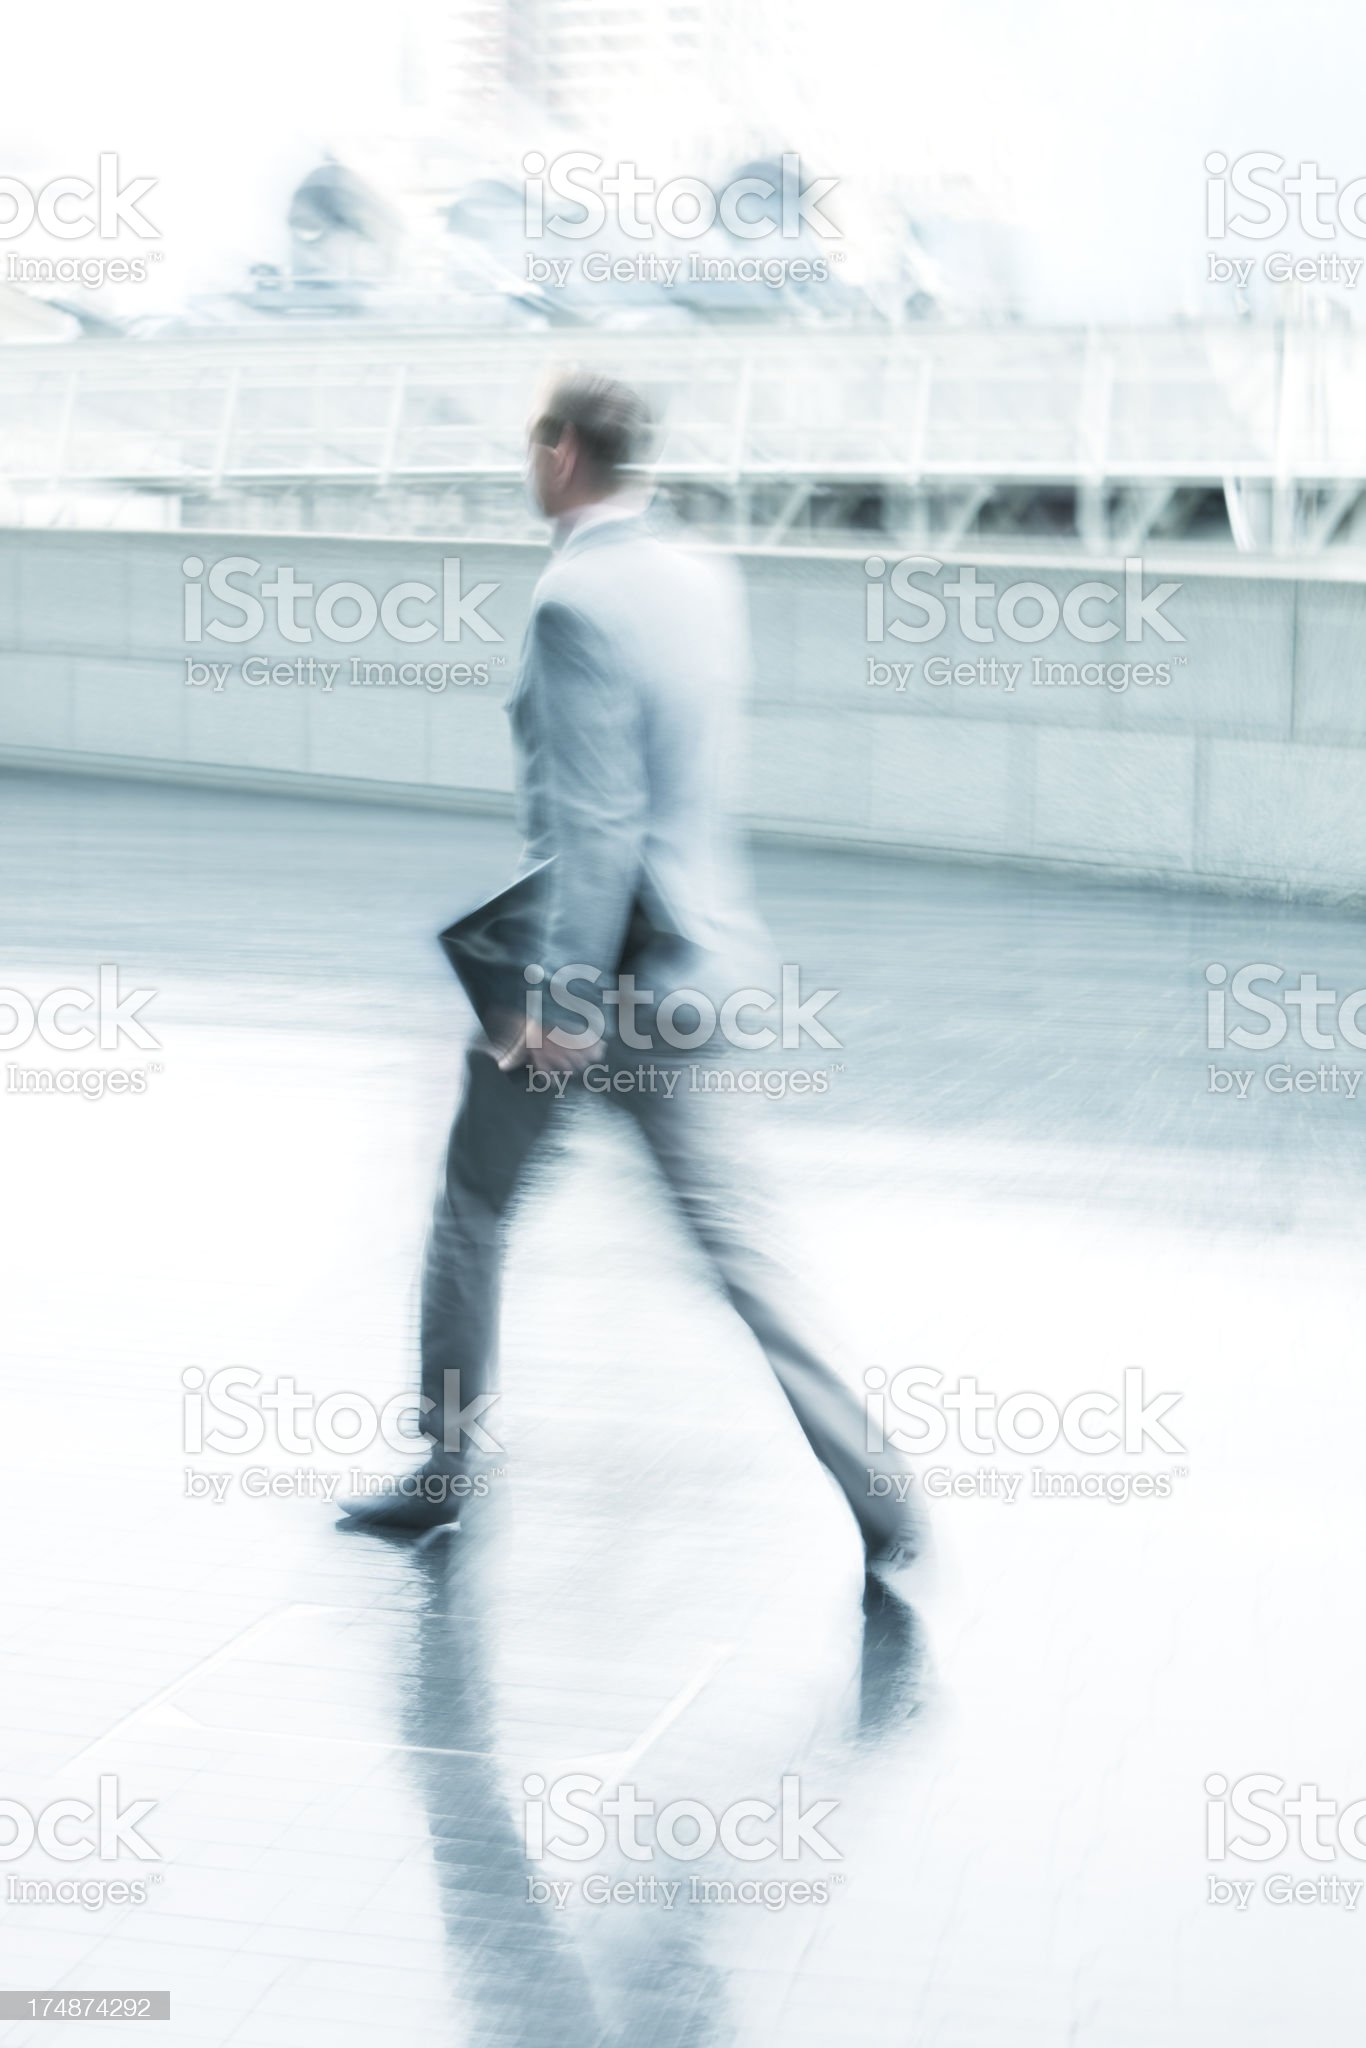 Blurred Young Businessman Walking on Rainy Day in London royalty-free stock photo